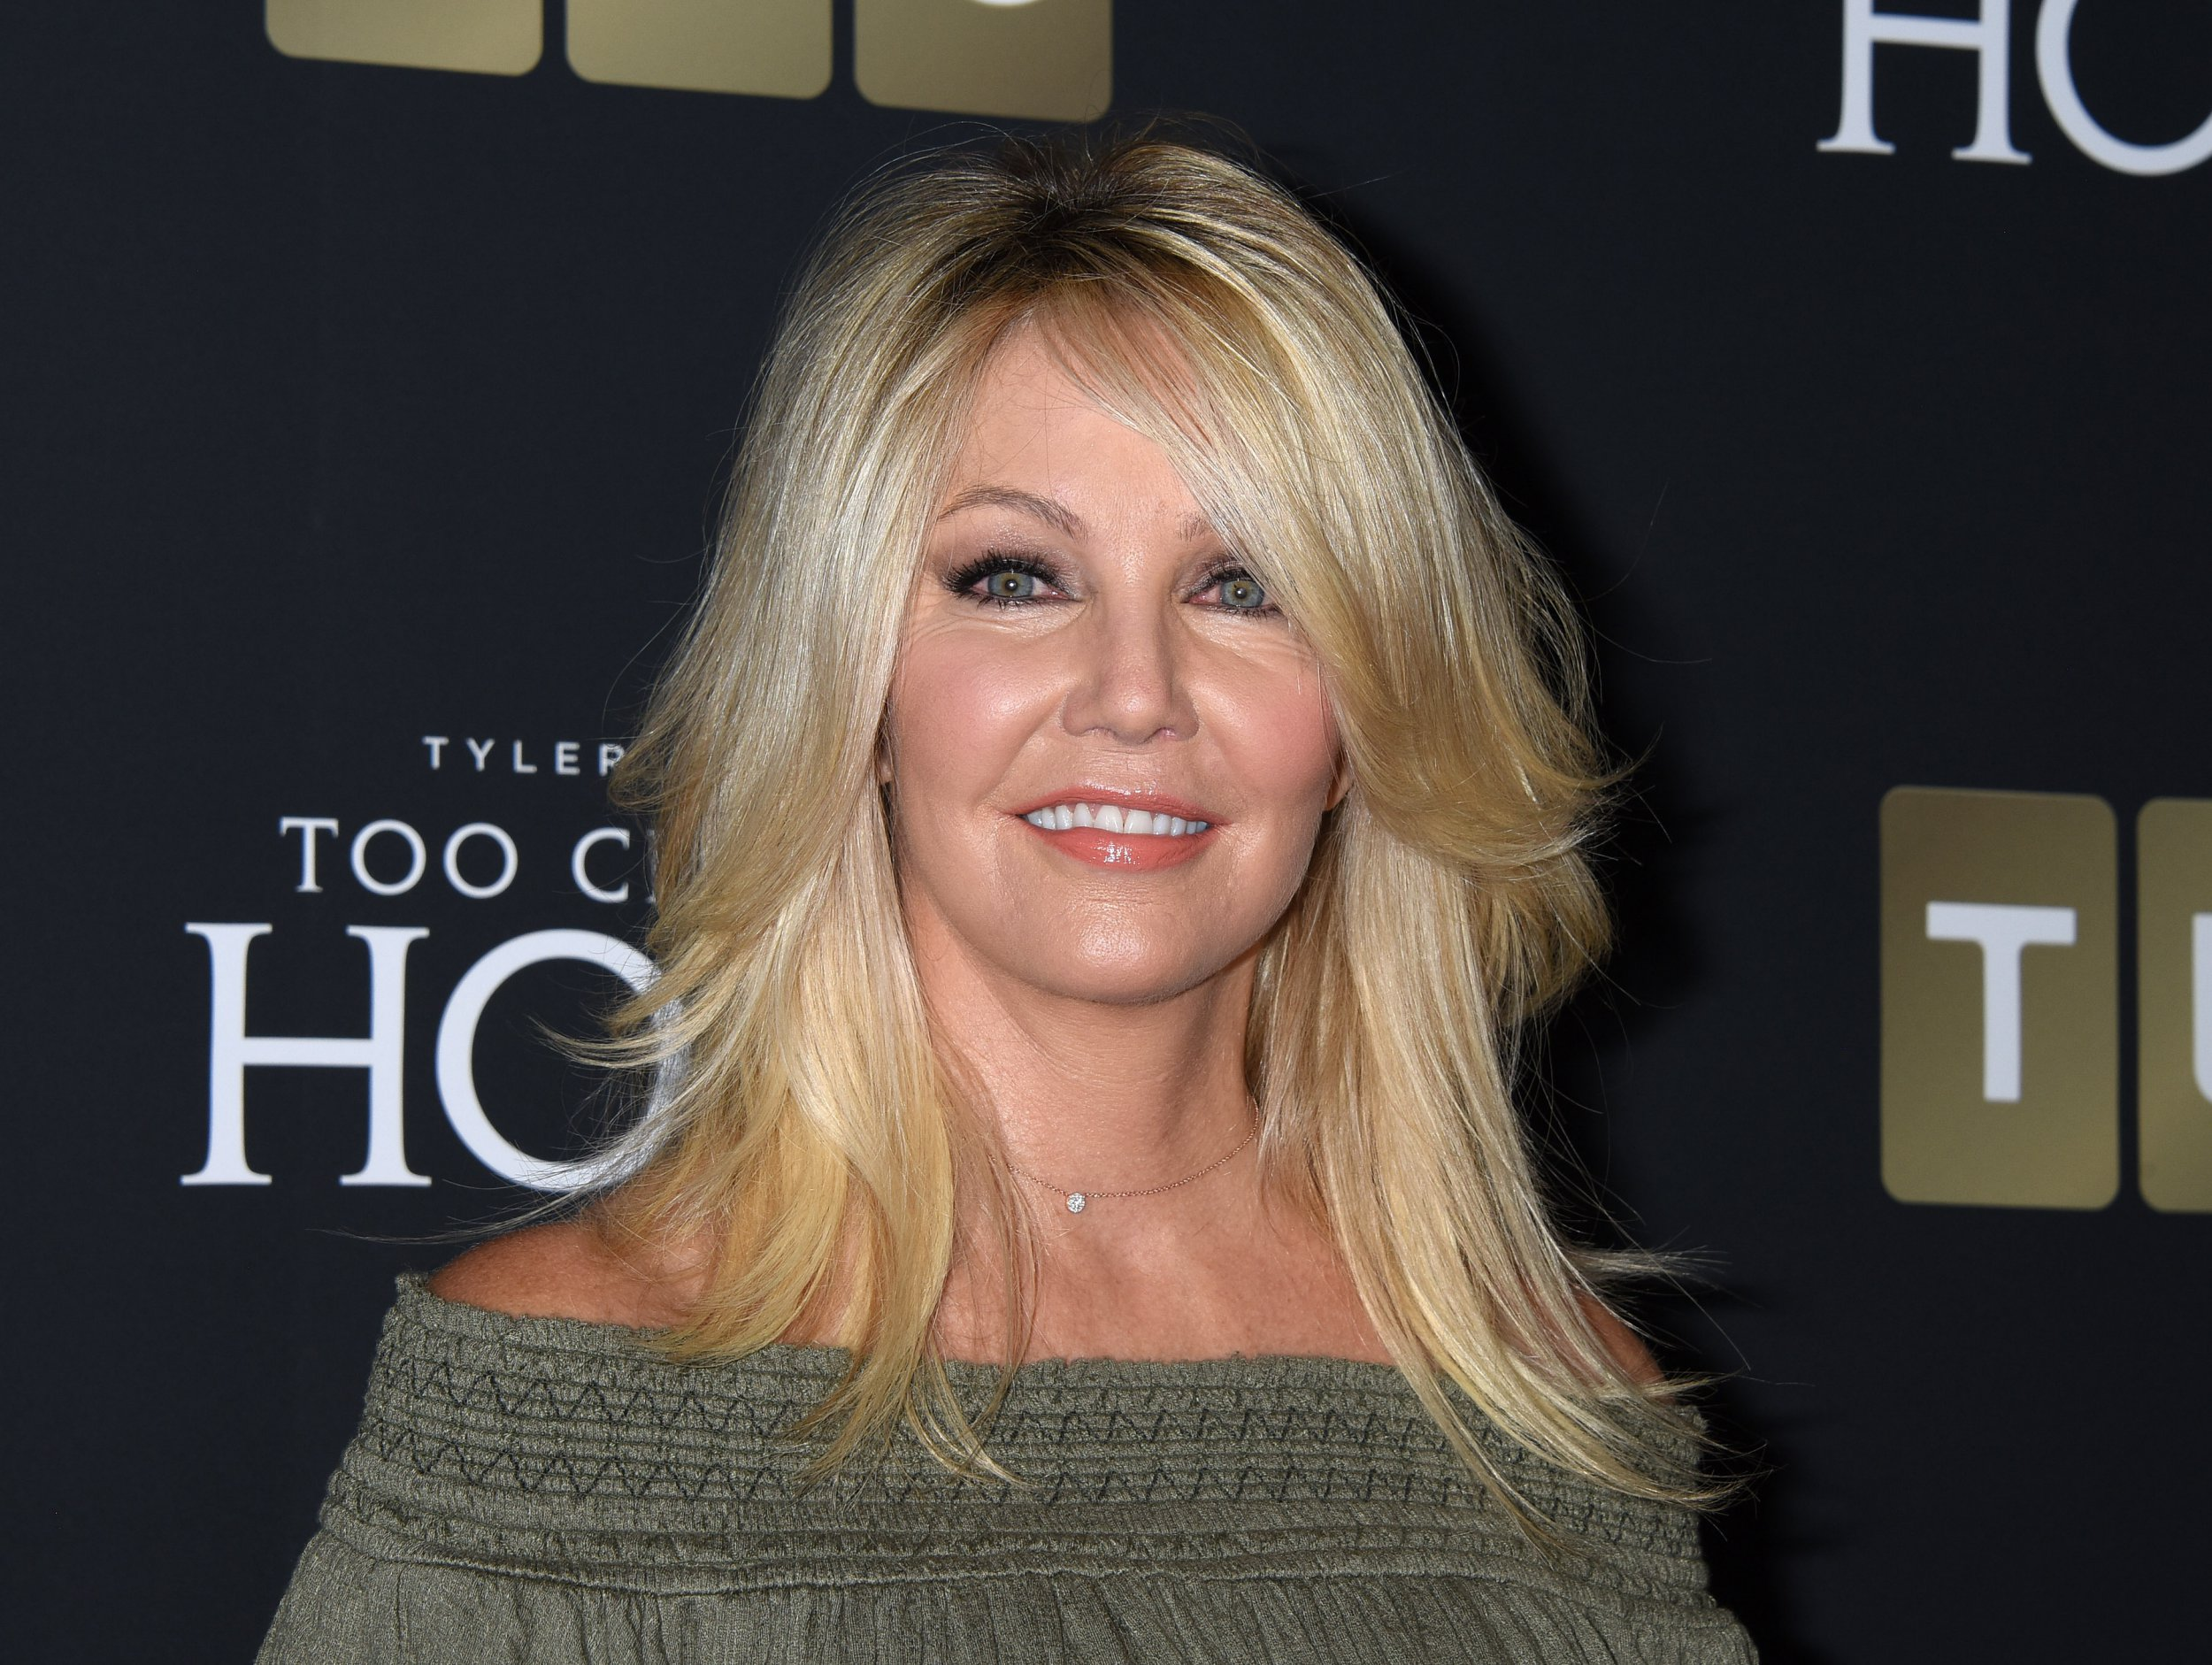 """Heather Locklear attends Tyler Perry's """"Too Close to Home"""" TLC's first original scripted series screening held at The Paley Center"""